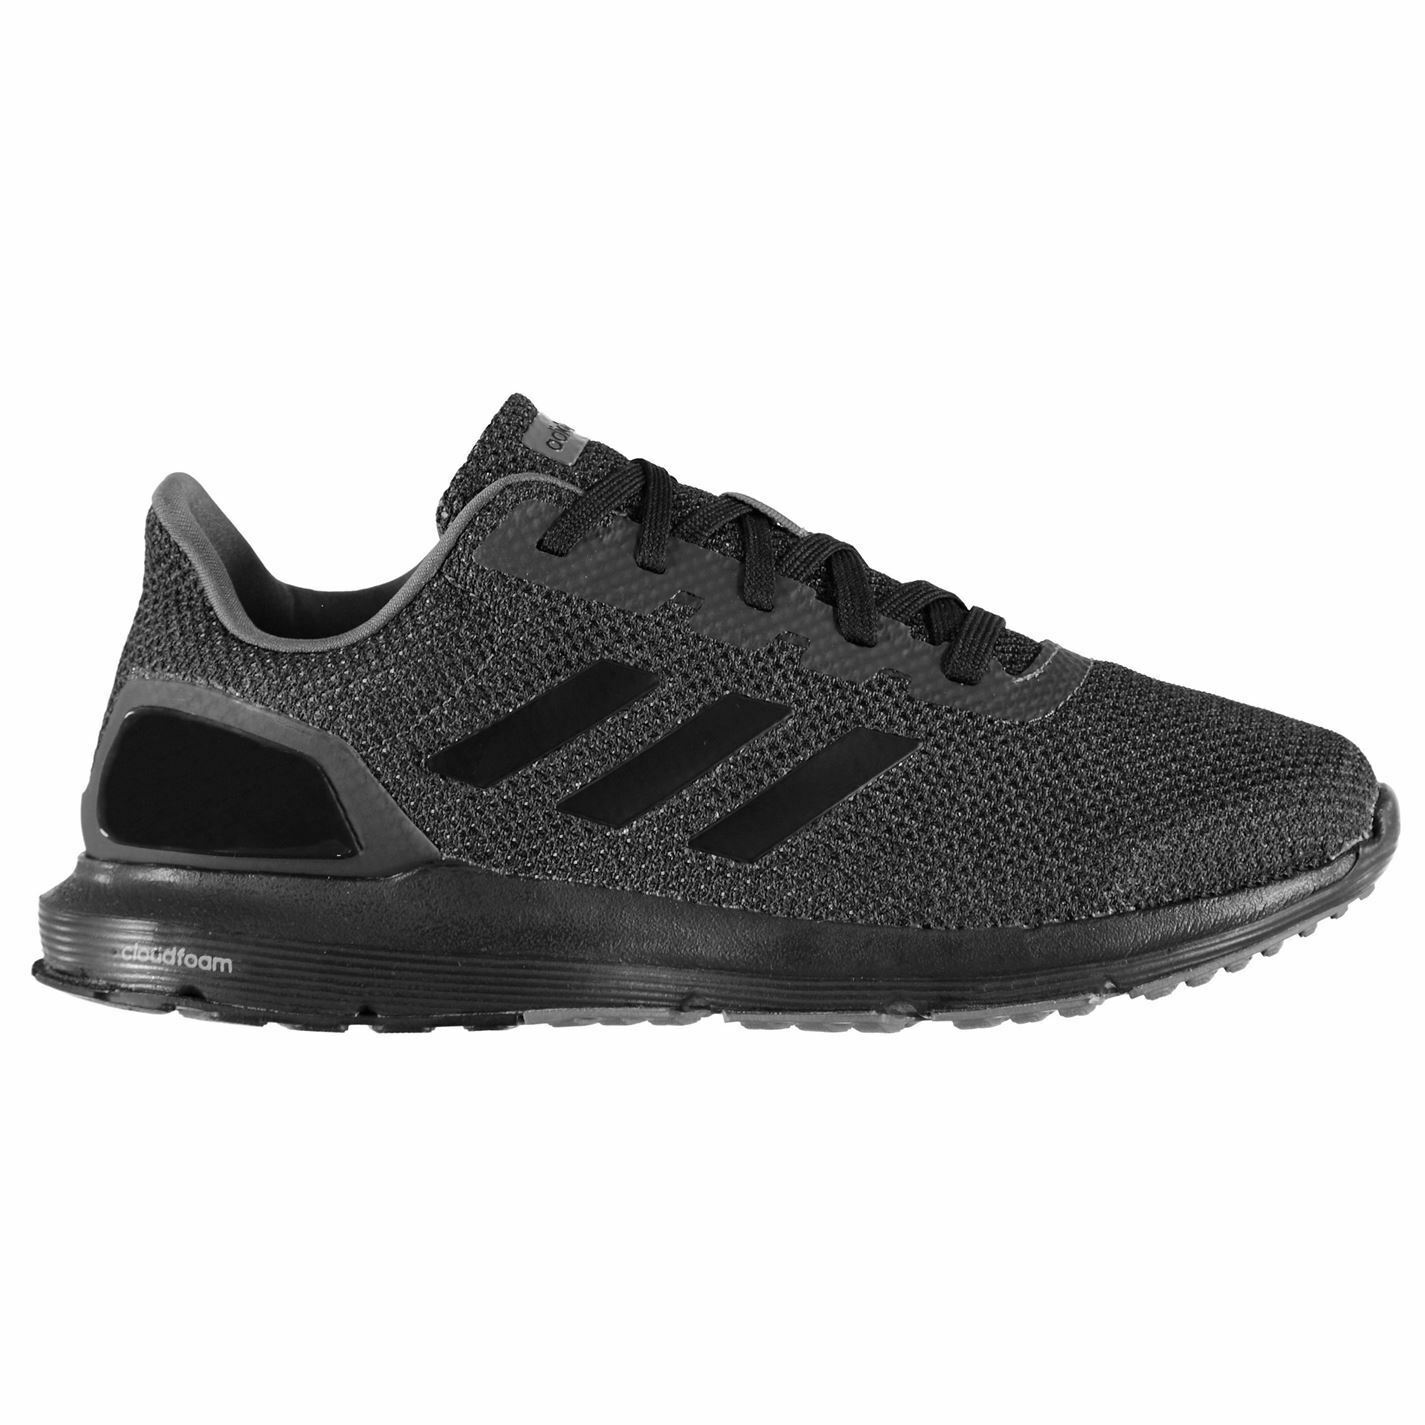 adidas Cosmic 2 Cloudfoam Trainers Sneakers Mens Black Sports Shoes Sneakers Trainers fb09af